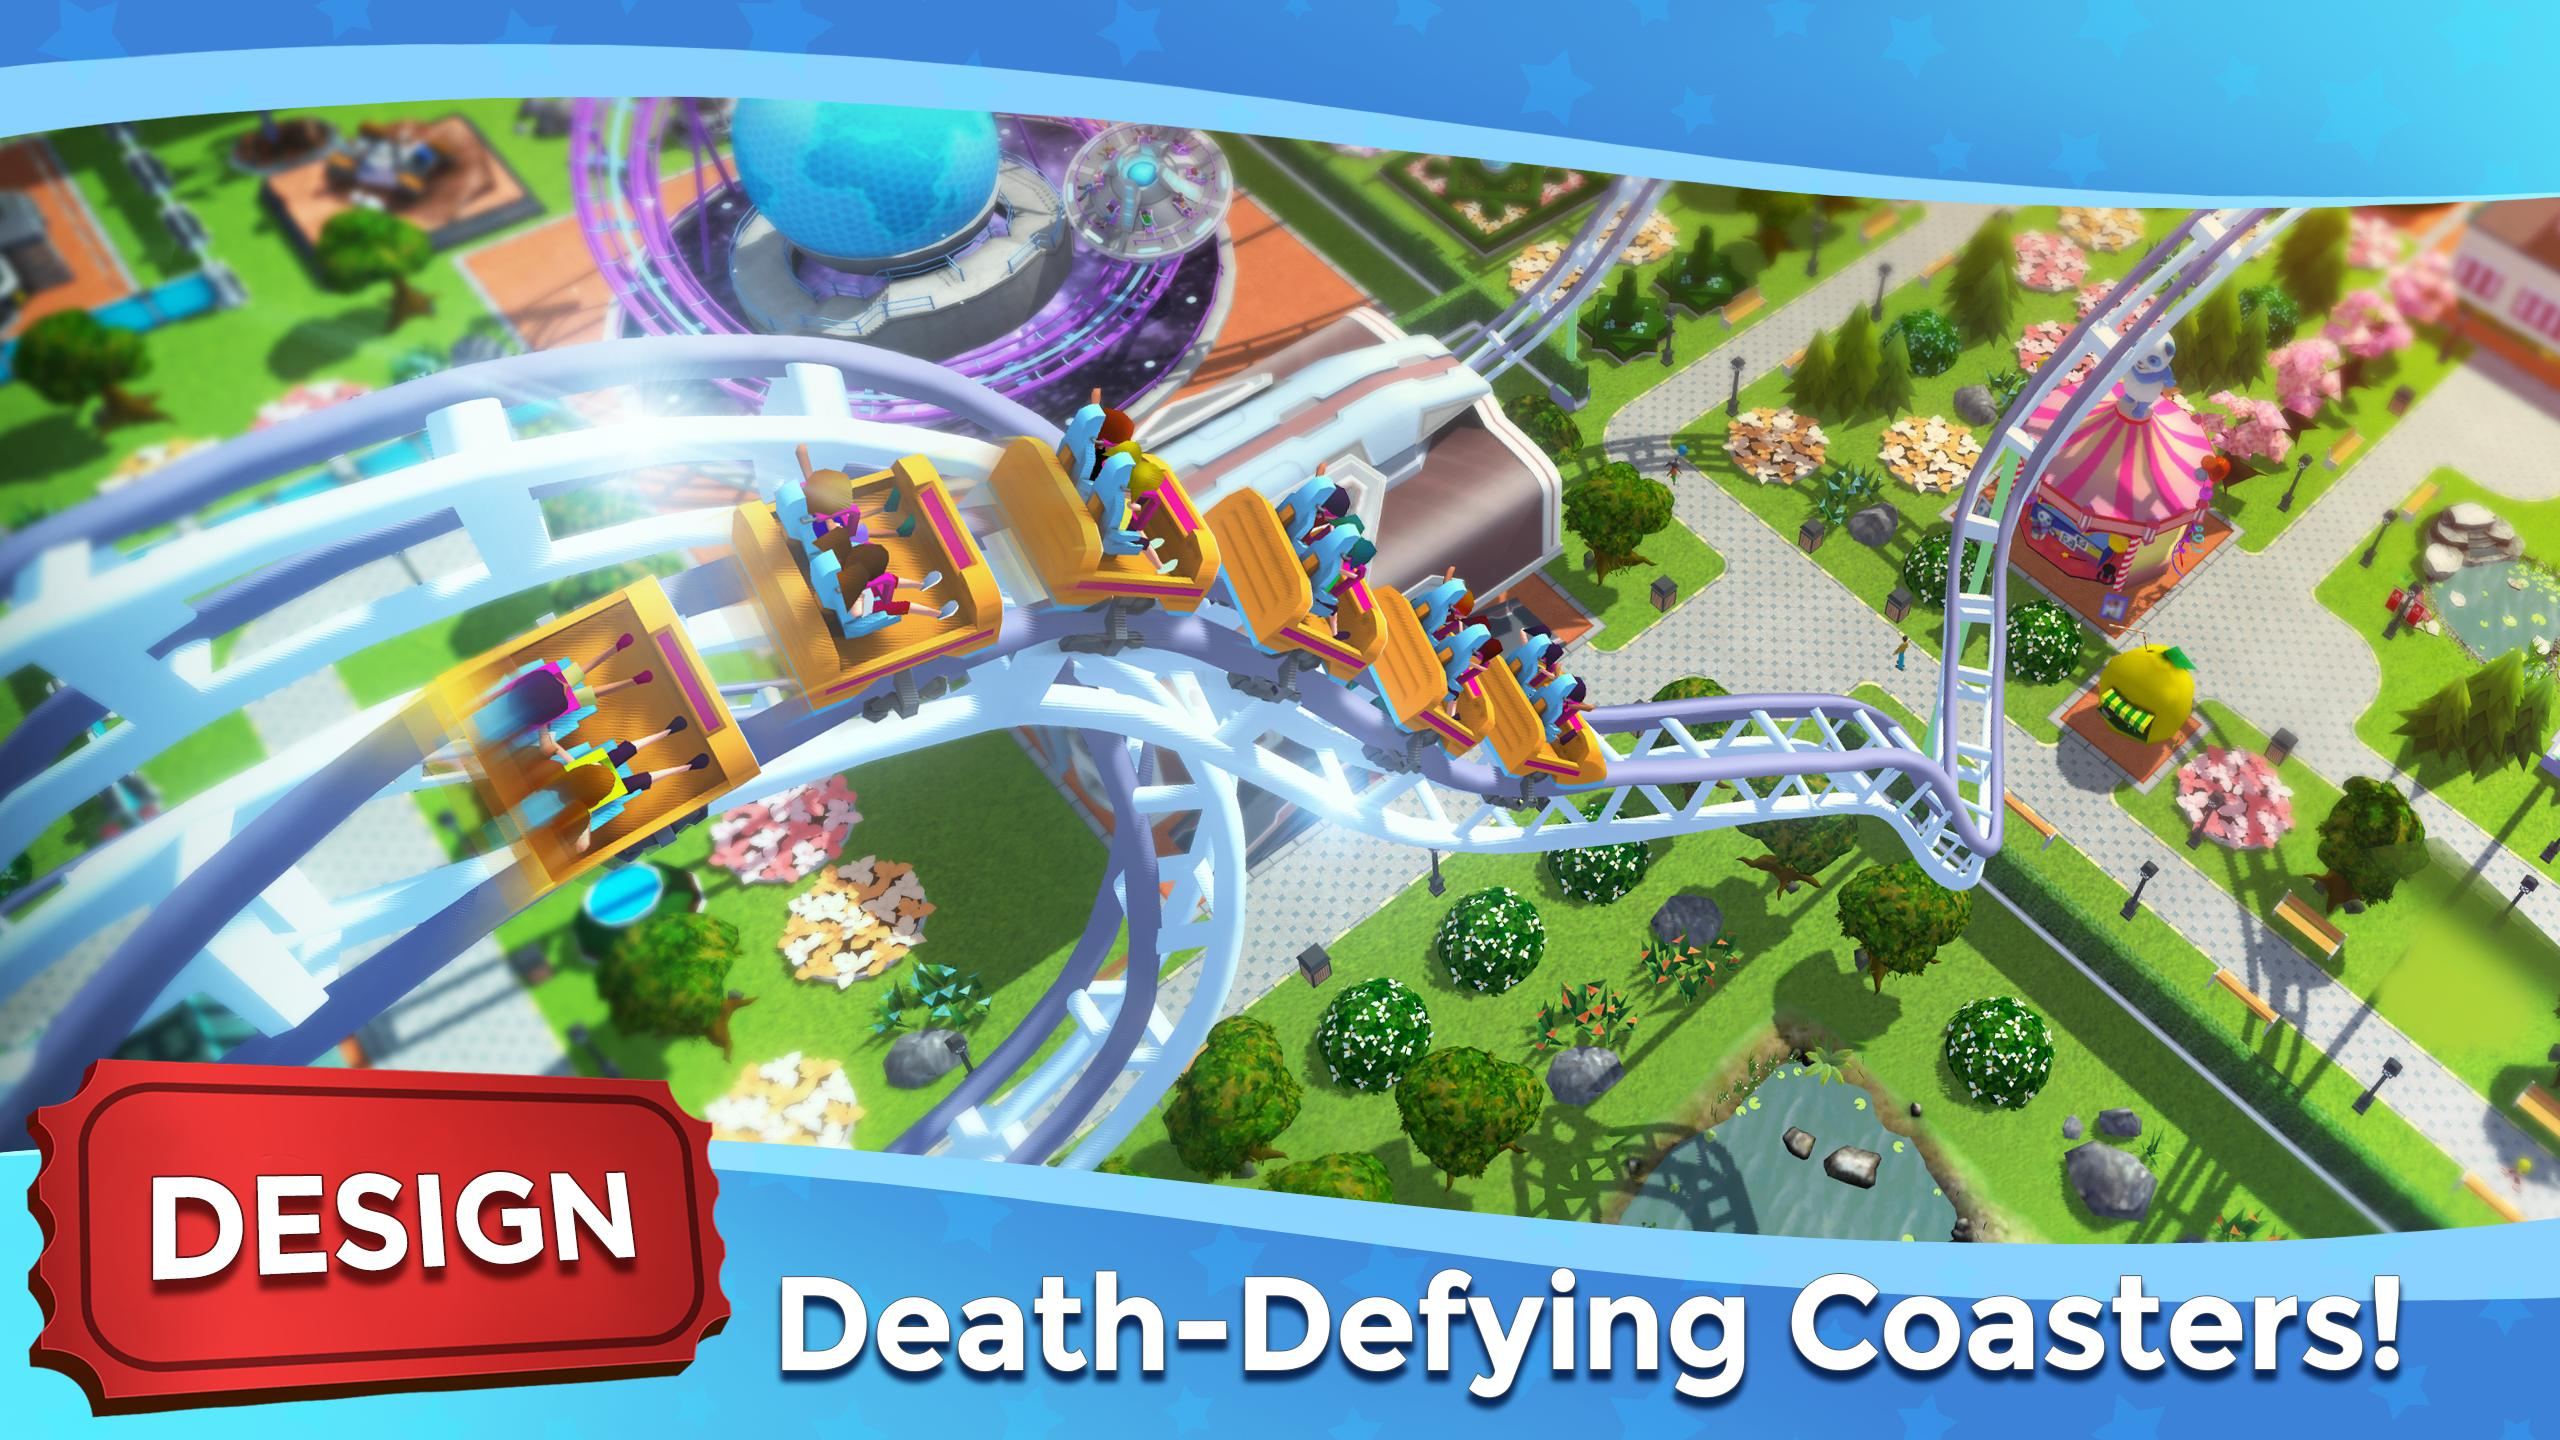 RollerCoaster Tycoon Touch - Build your Theme Park 3.5.0 Screenshot 10